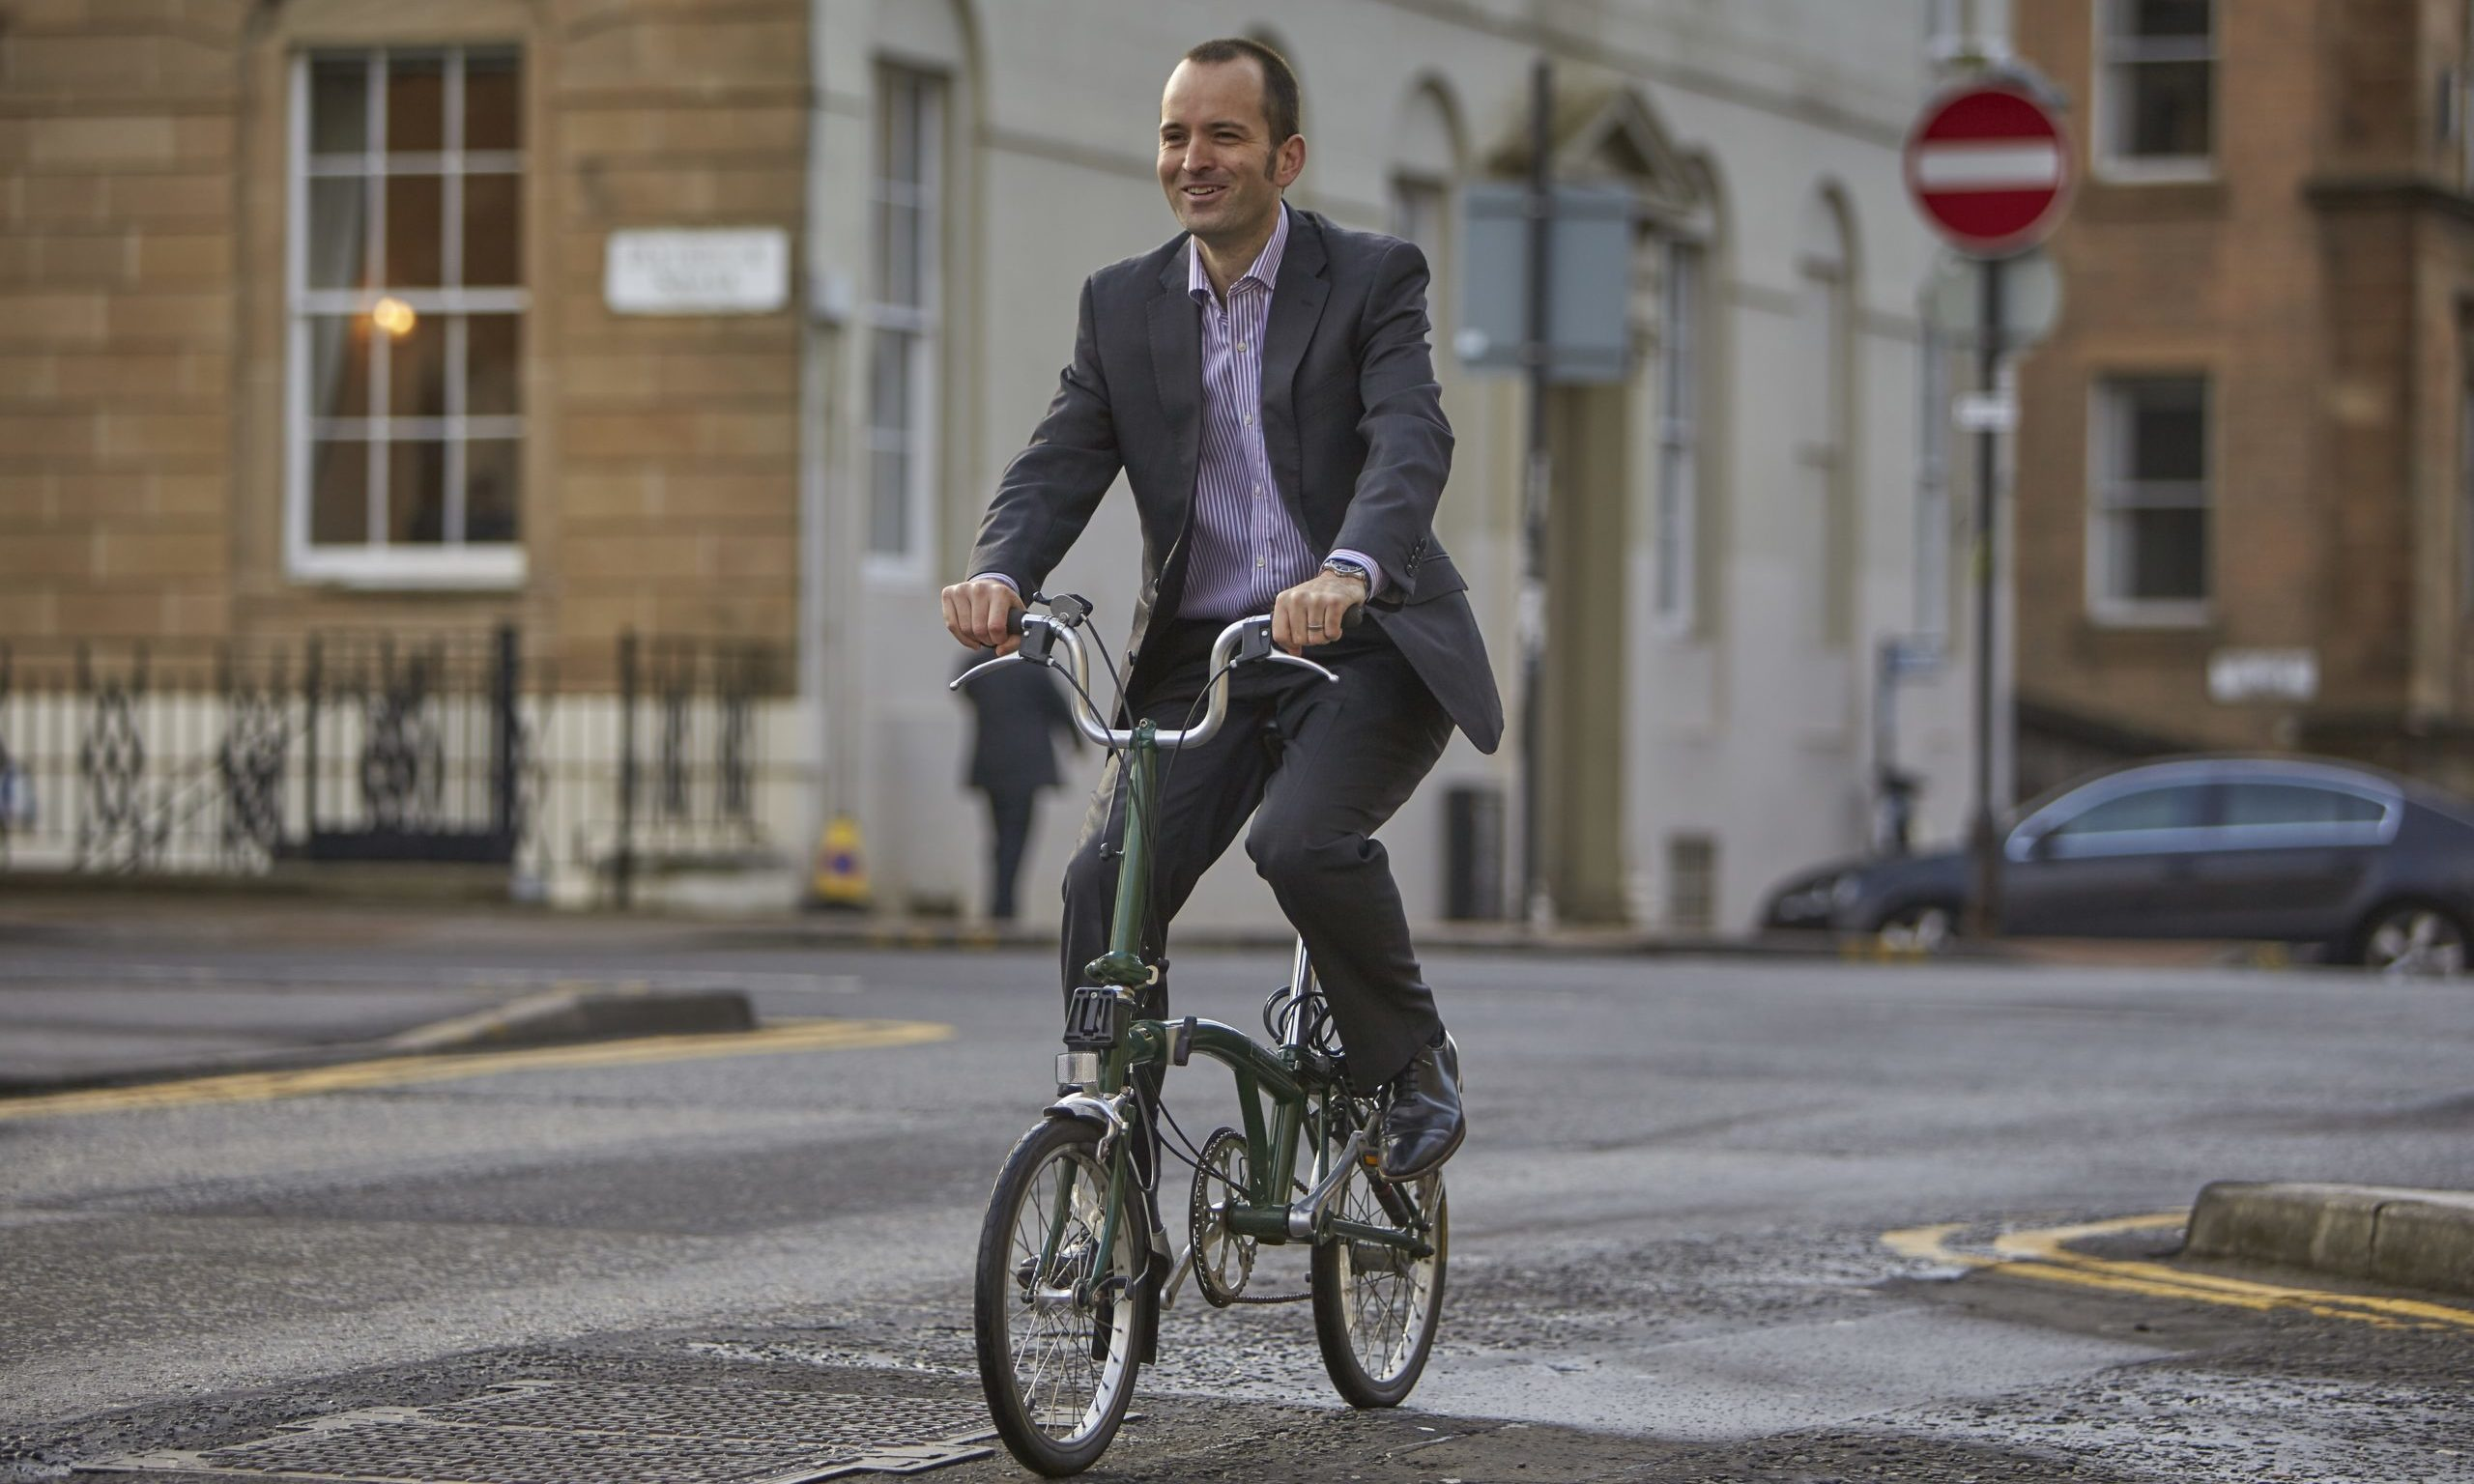 Keith Irving, CEO of Cycling Scotland